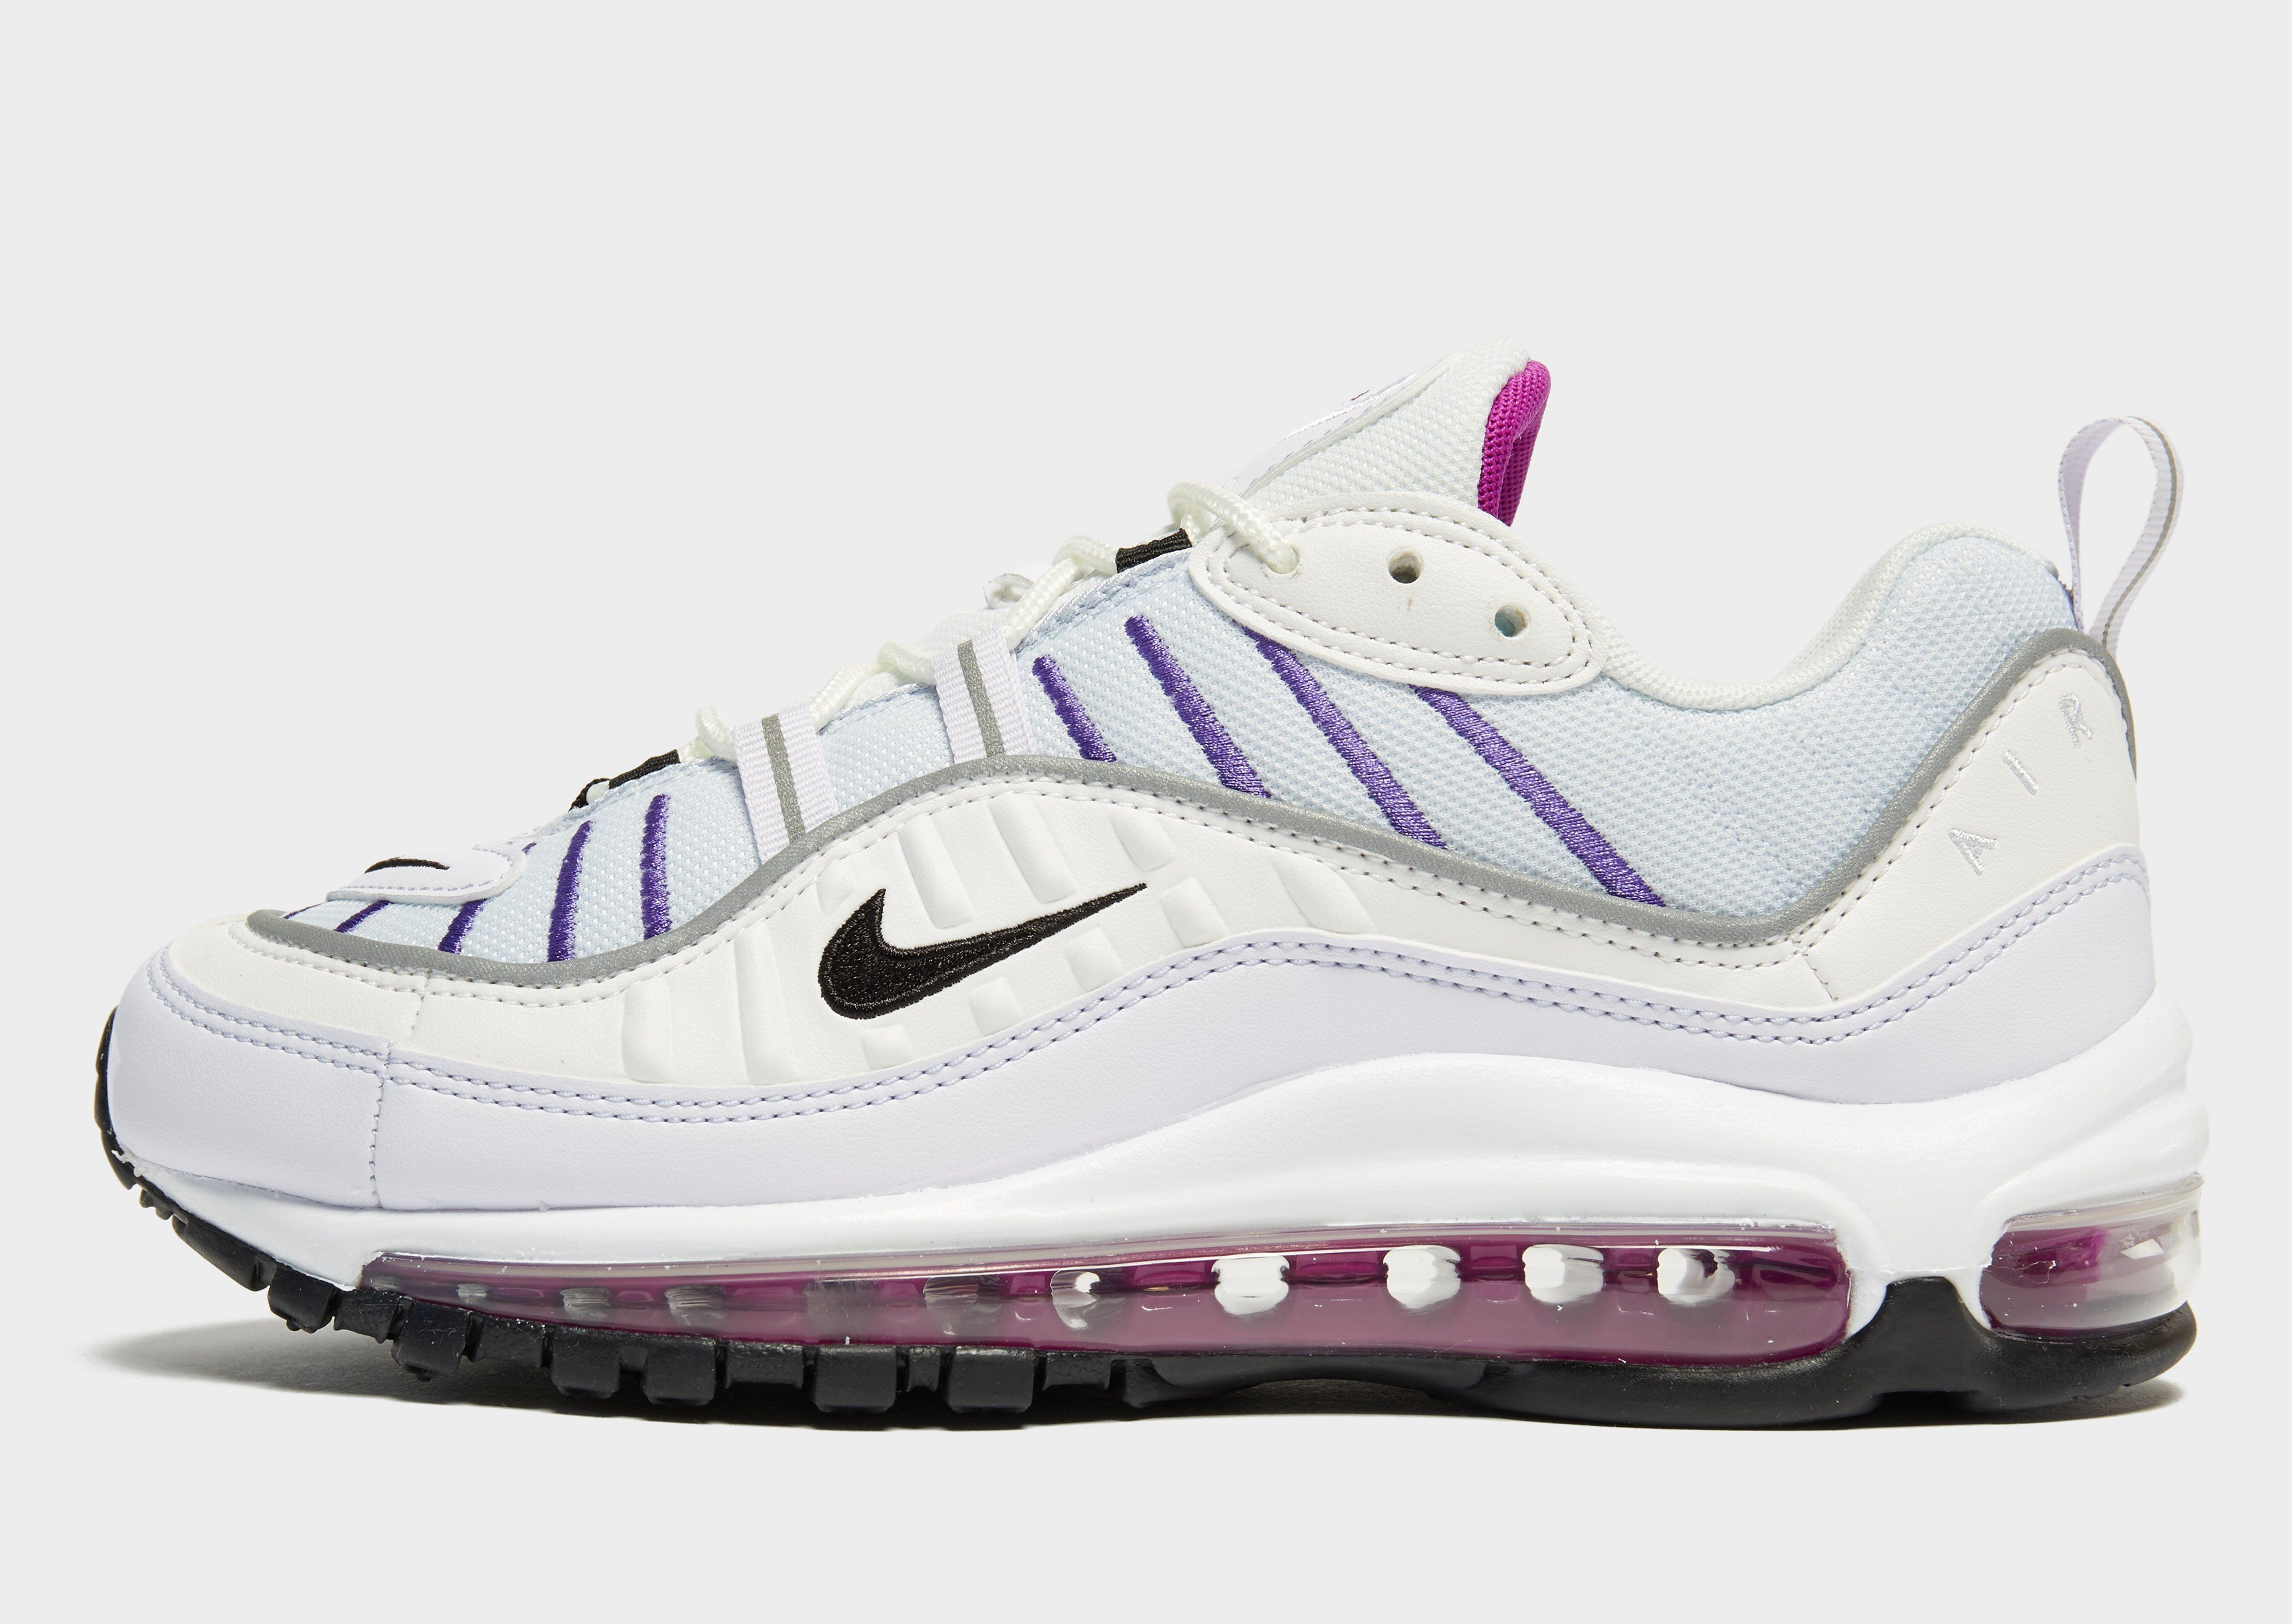 new concept f65a2 c3458 Nike Nike Air Max 98 Women's Shoe | JD Sports